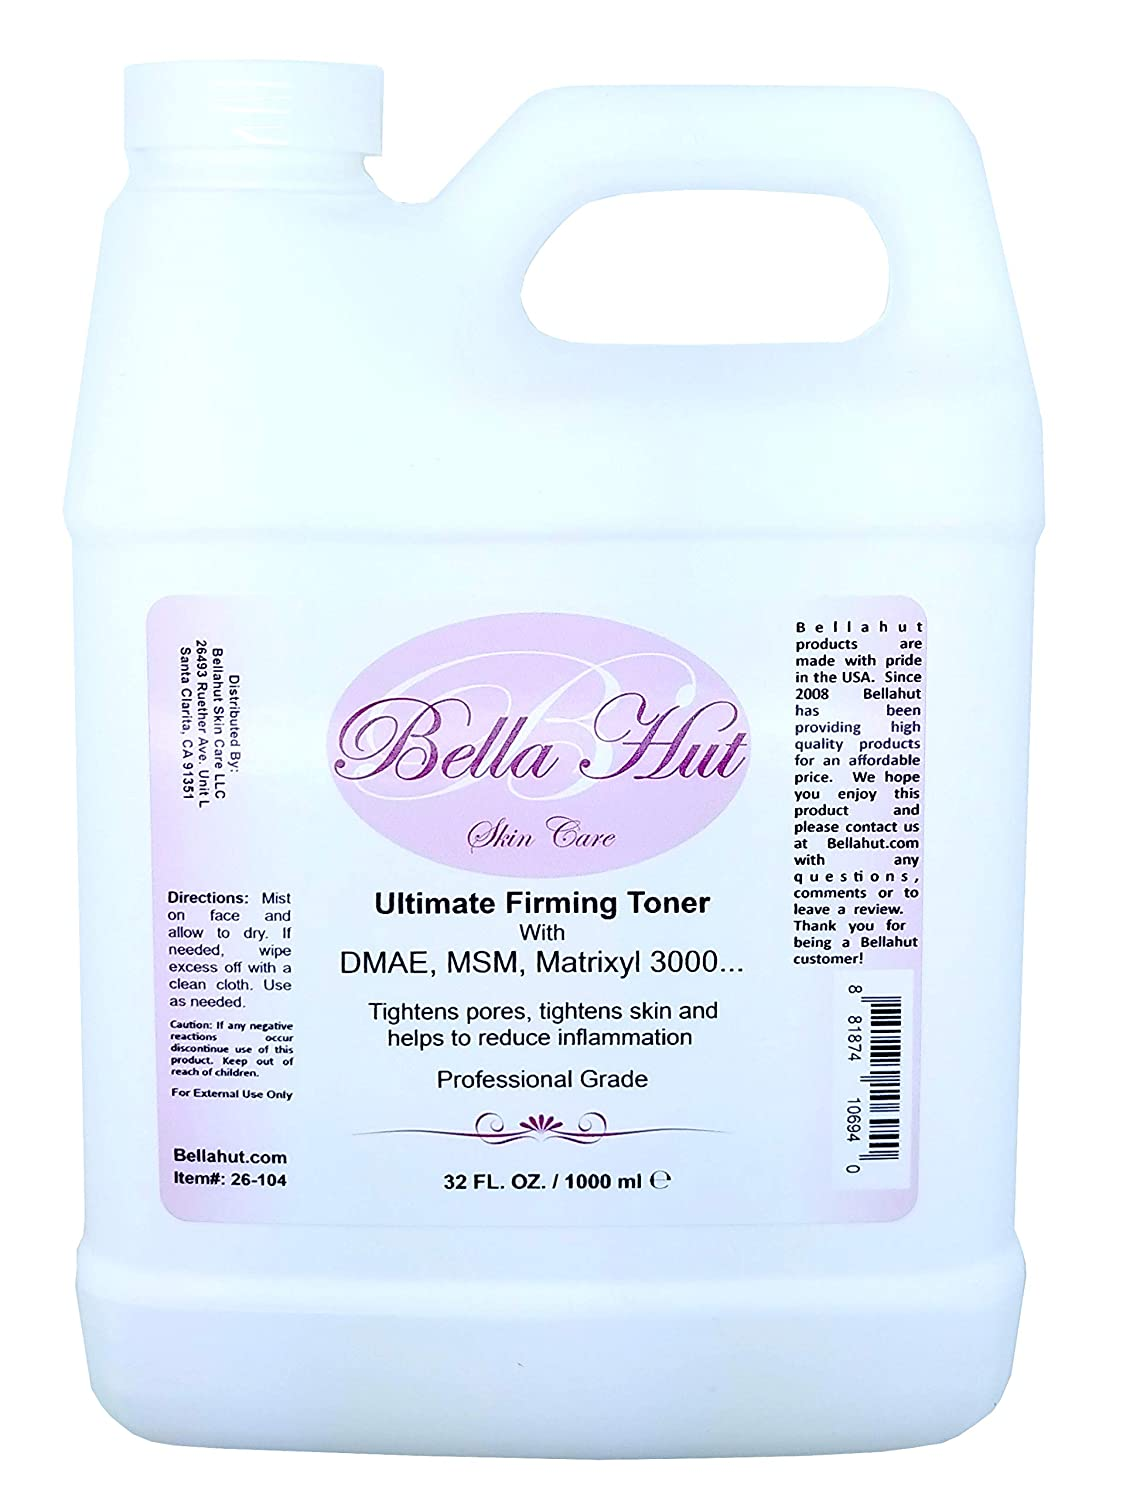 Bellahut Ultimate DMAE MSM Ac Toner with Ranking integrated 1st place HYALURONIC Seasonal Wrap Introduction